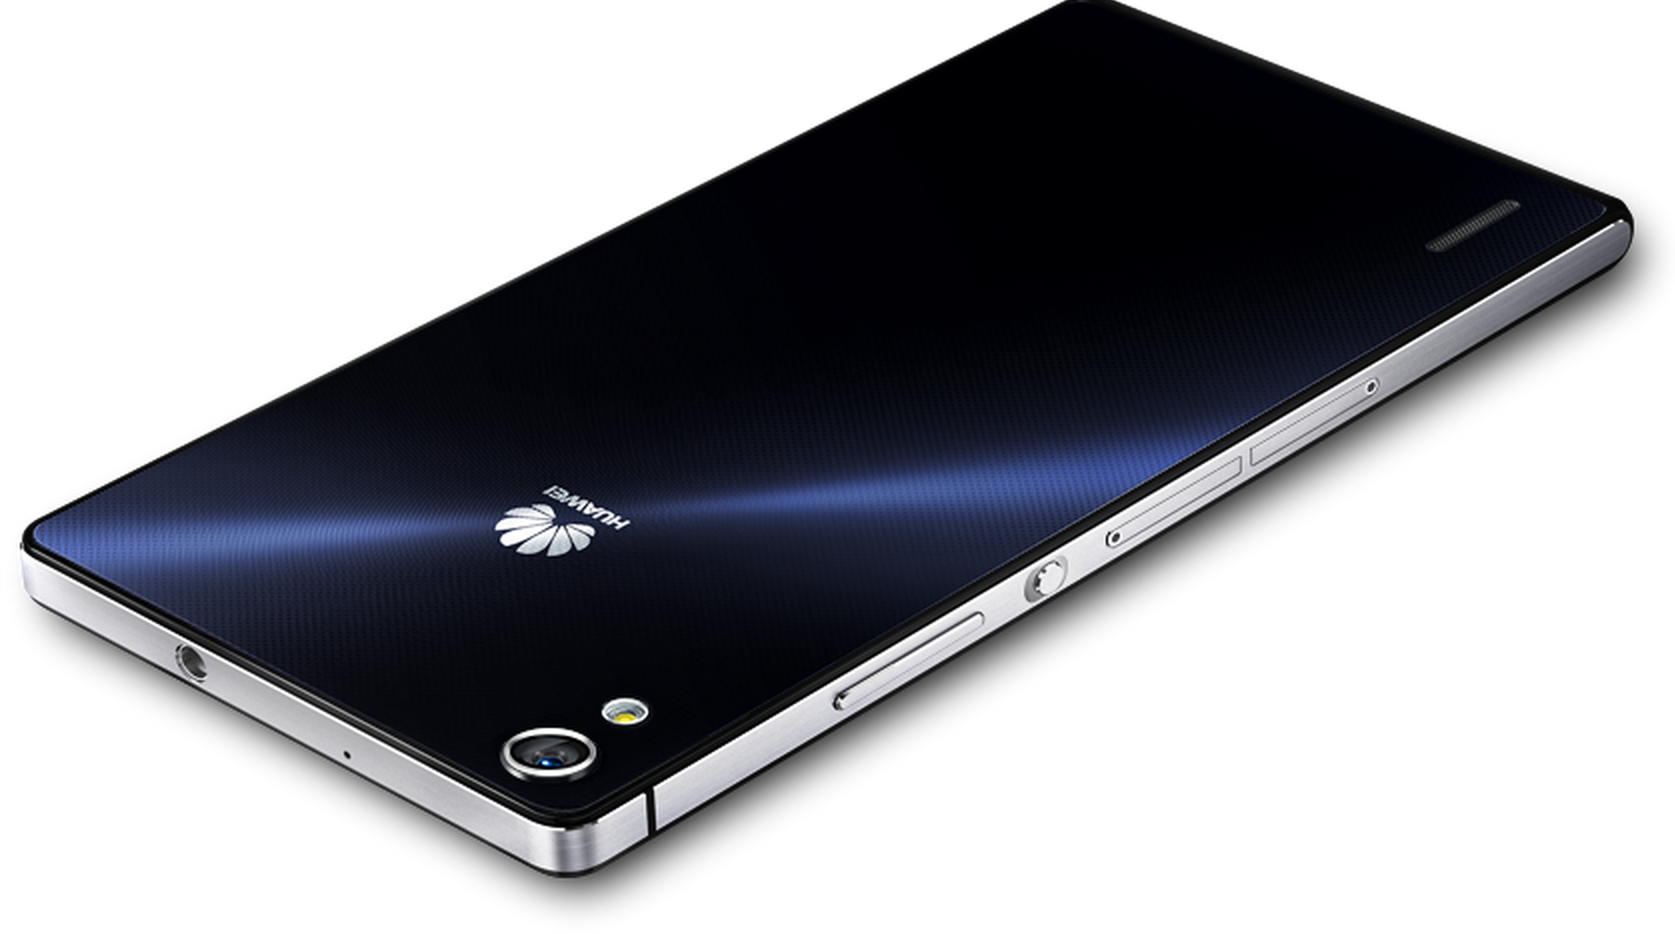 New IDC Report Shows Huawei Doubling Smartphone Shipments ...